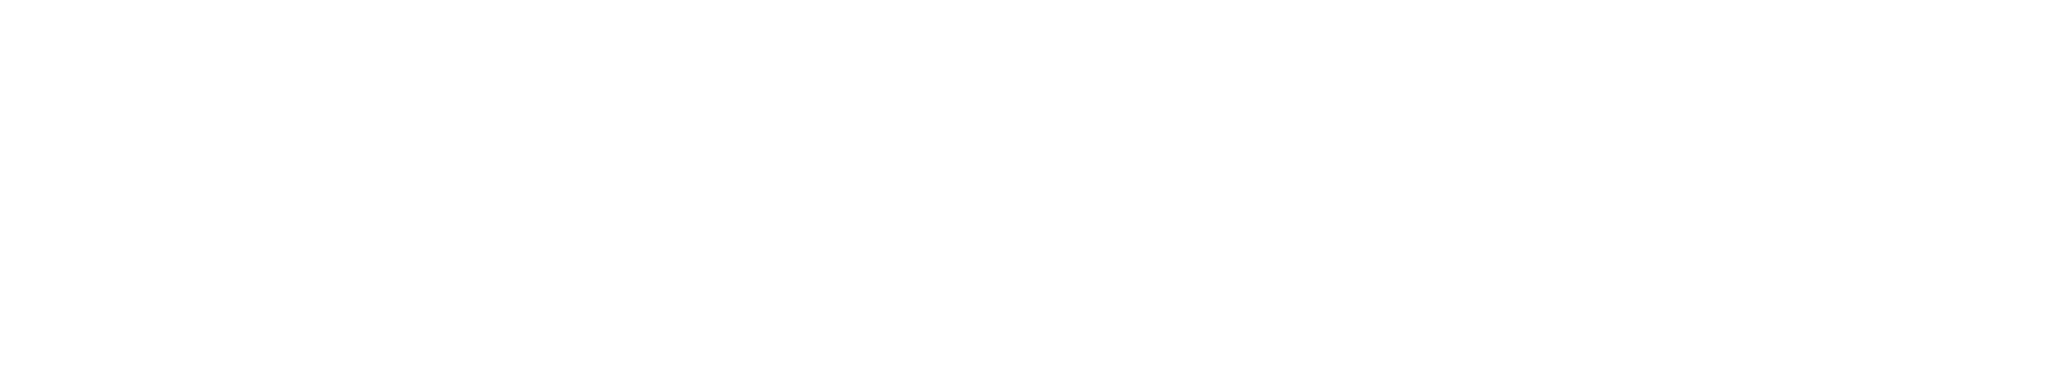 Matchless.png